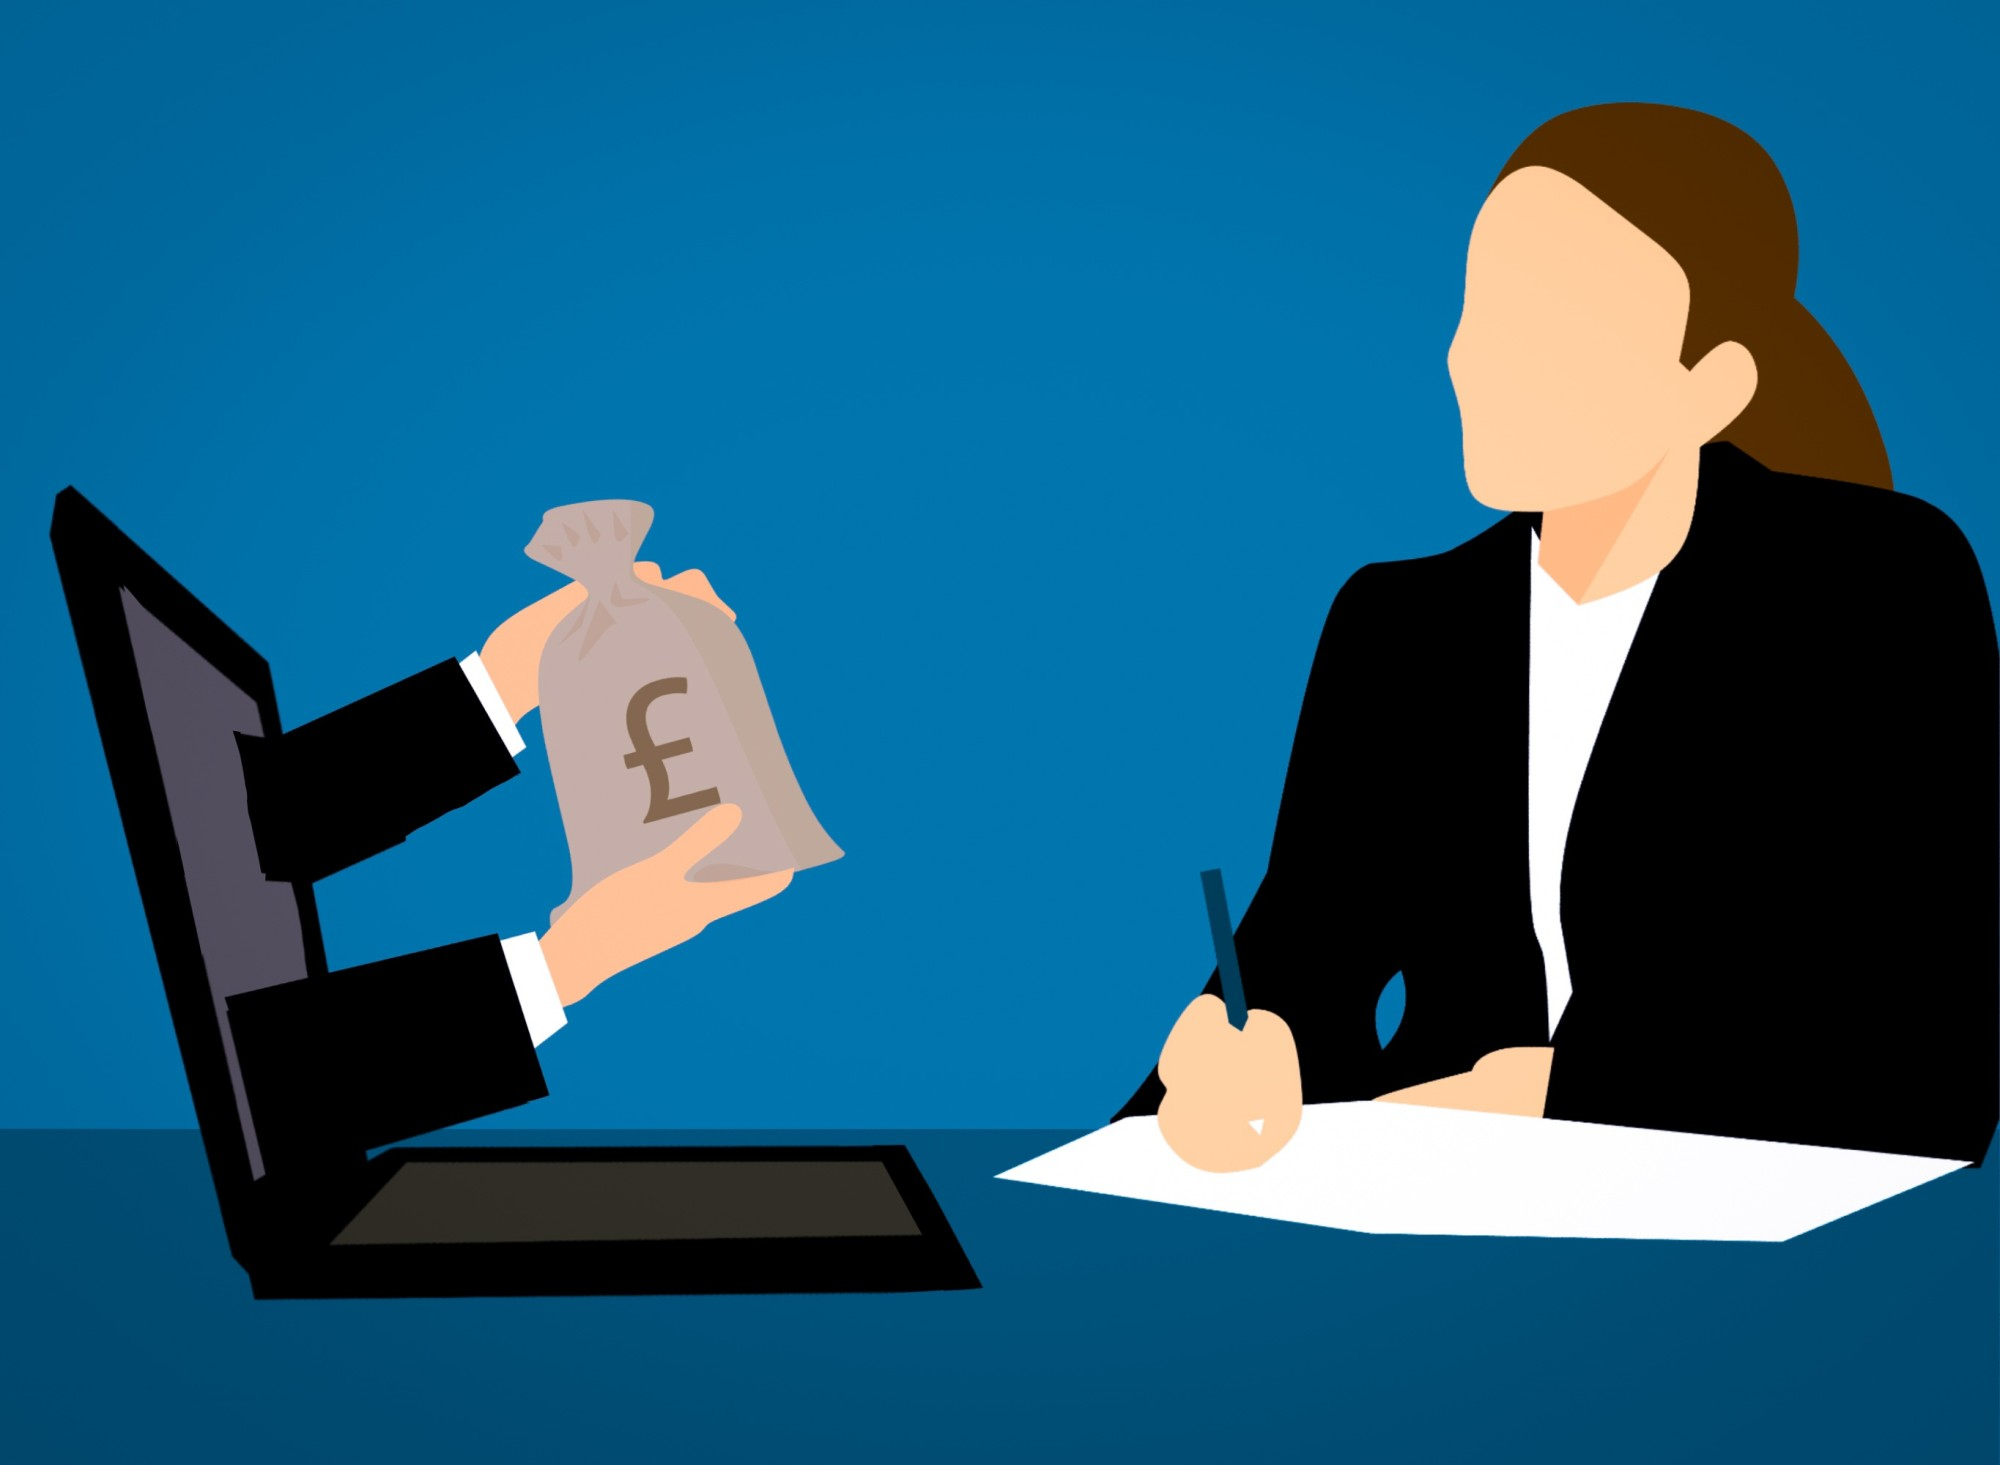 Payroll Outsourcing vs In-House Payroll: Which is Better?